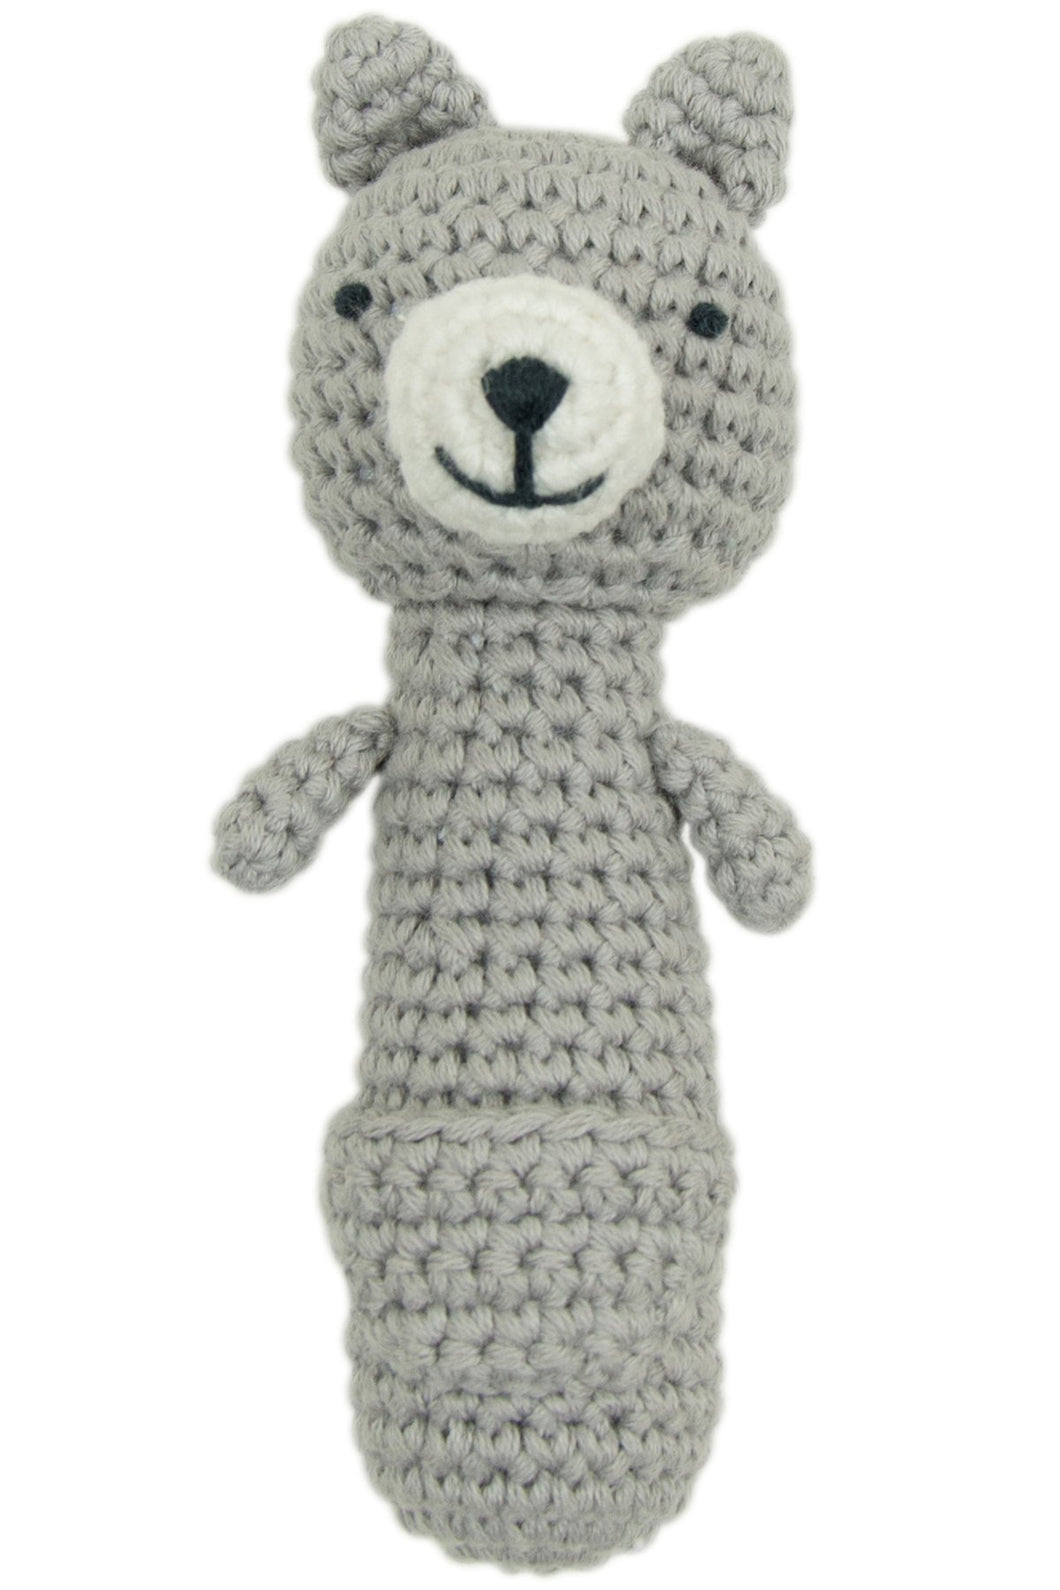 Kangaroo Crochet Rattle by Weegoamigo